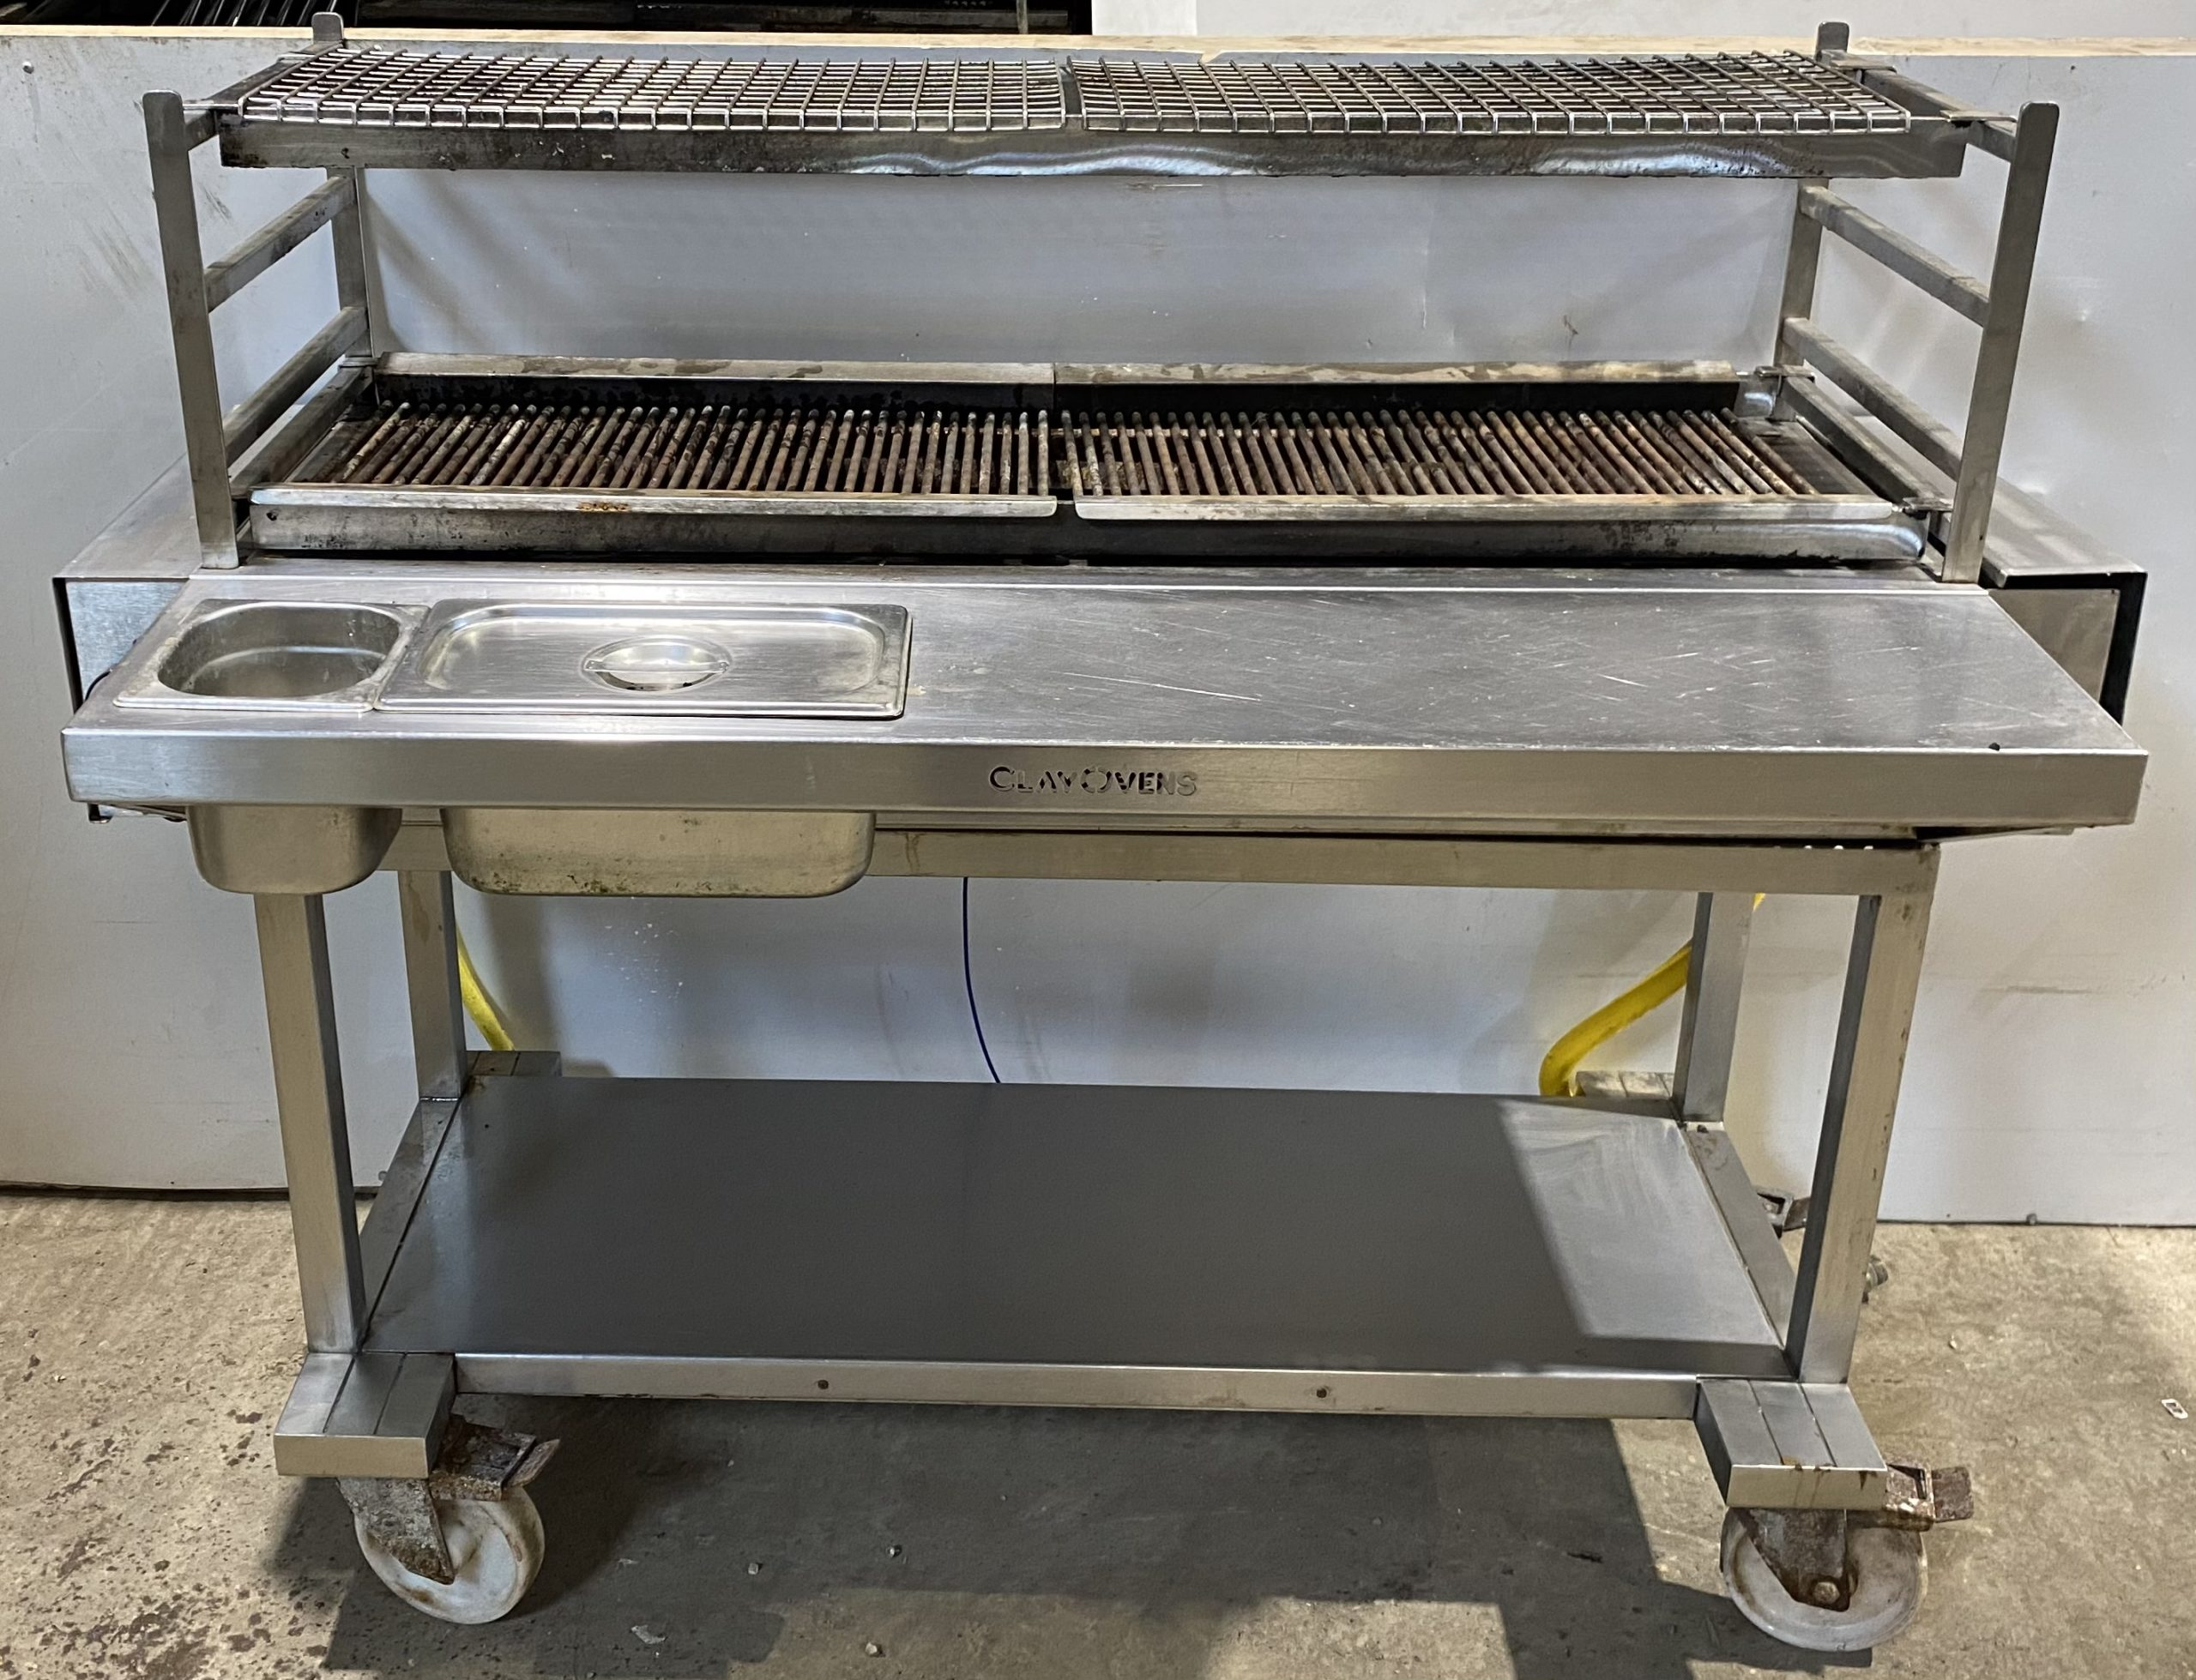 CLAY OVENS Rabata Flame Char Grill